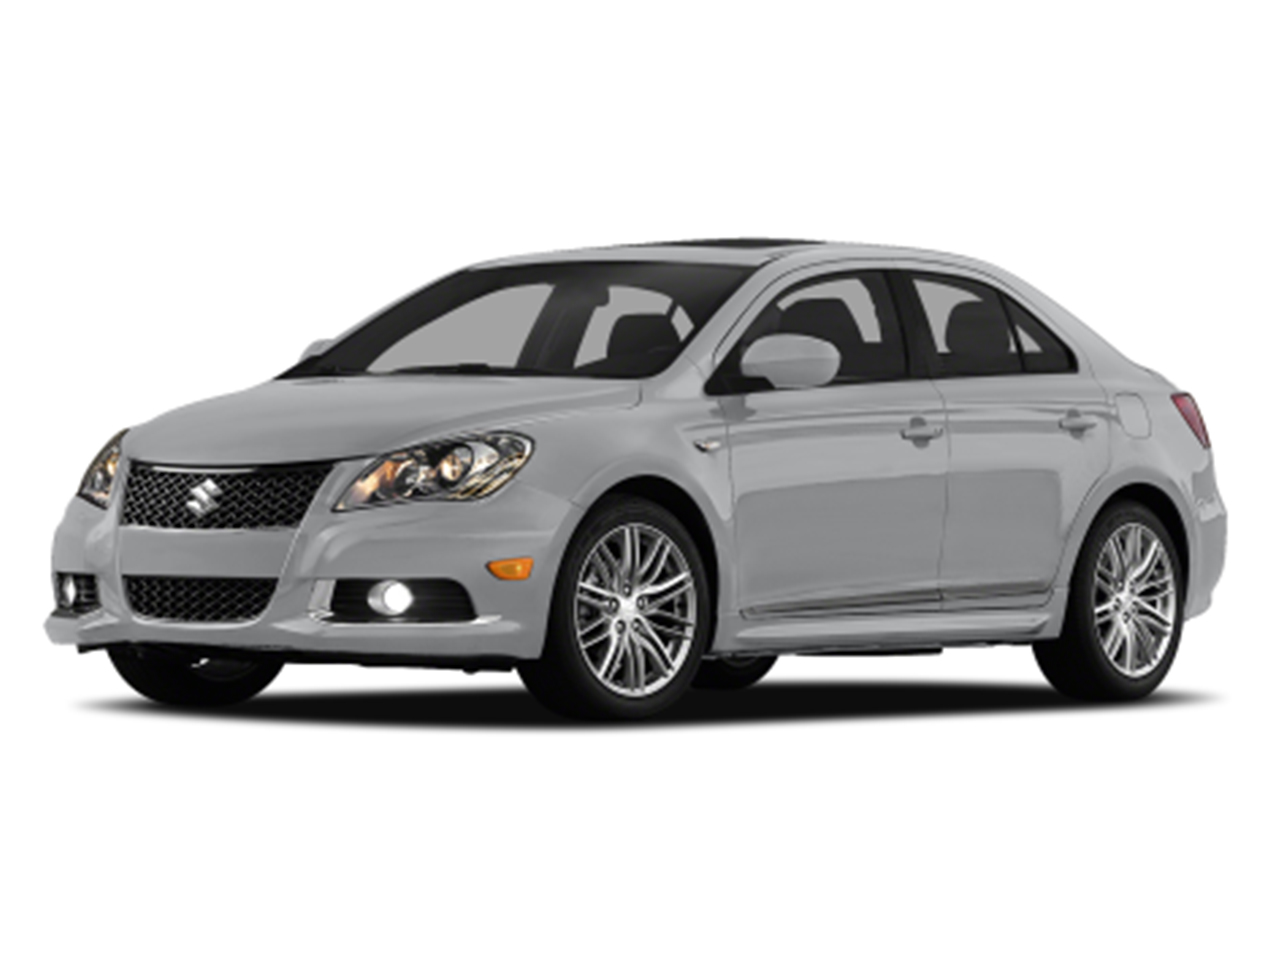 2017 Suzuki Kizashi Prices in Saudi Arabia, Gulf Specs ...